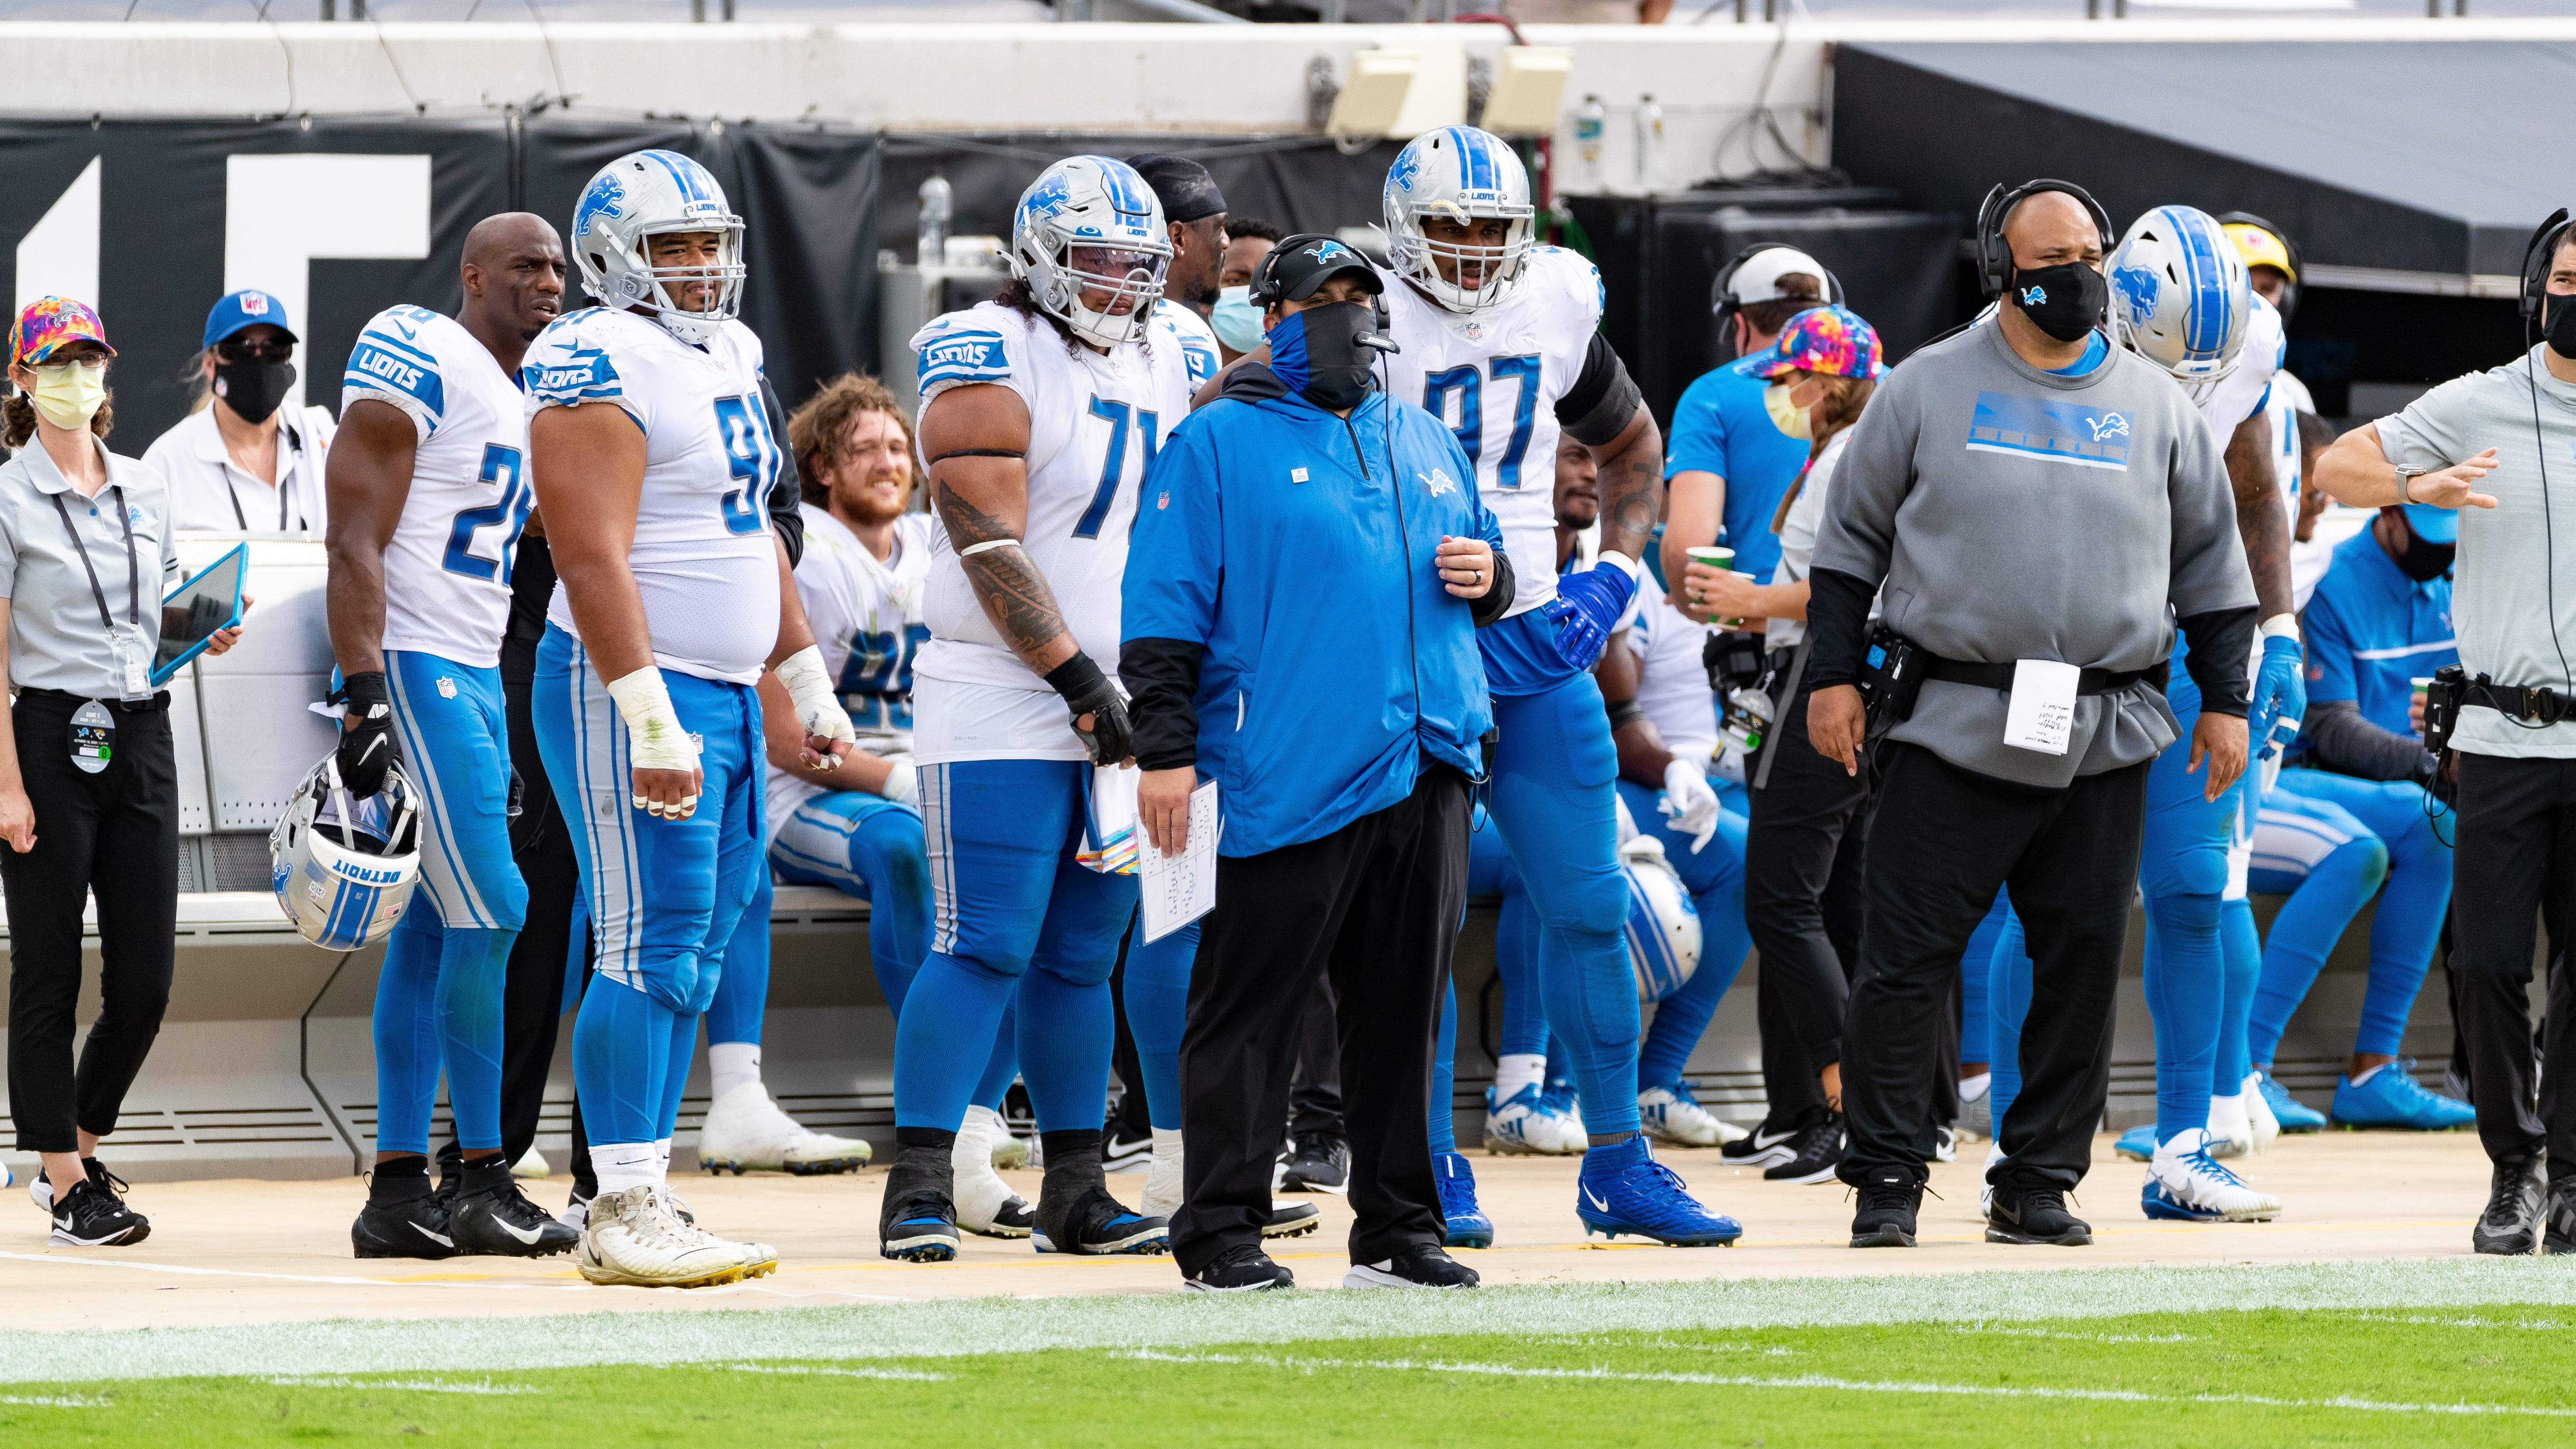 Detroit Lions head coach Matt Patricia, center, during the game against the Jacksonville Jaguars at TIAA Bank Field on Sunday, October 18, 2020.